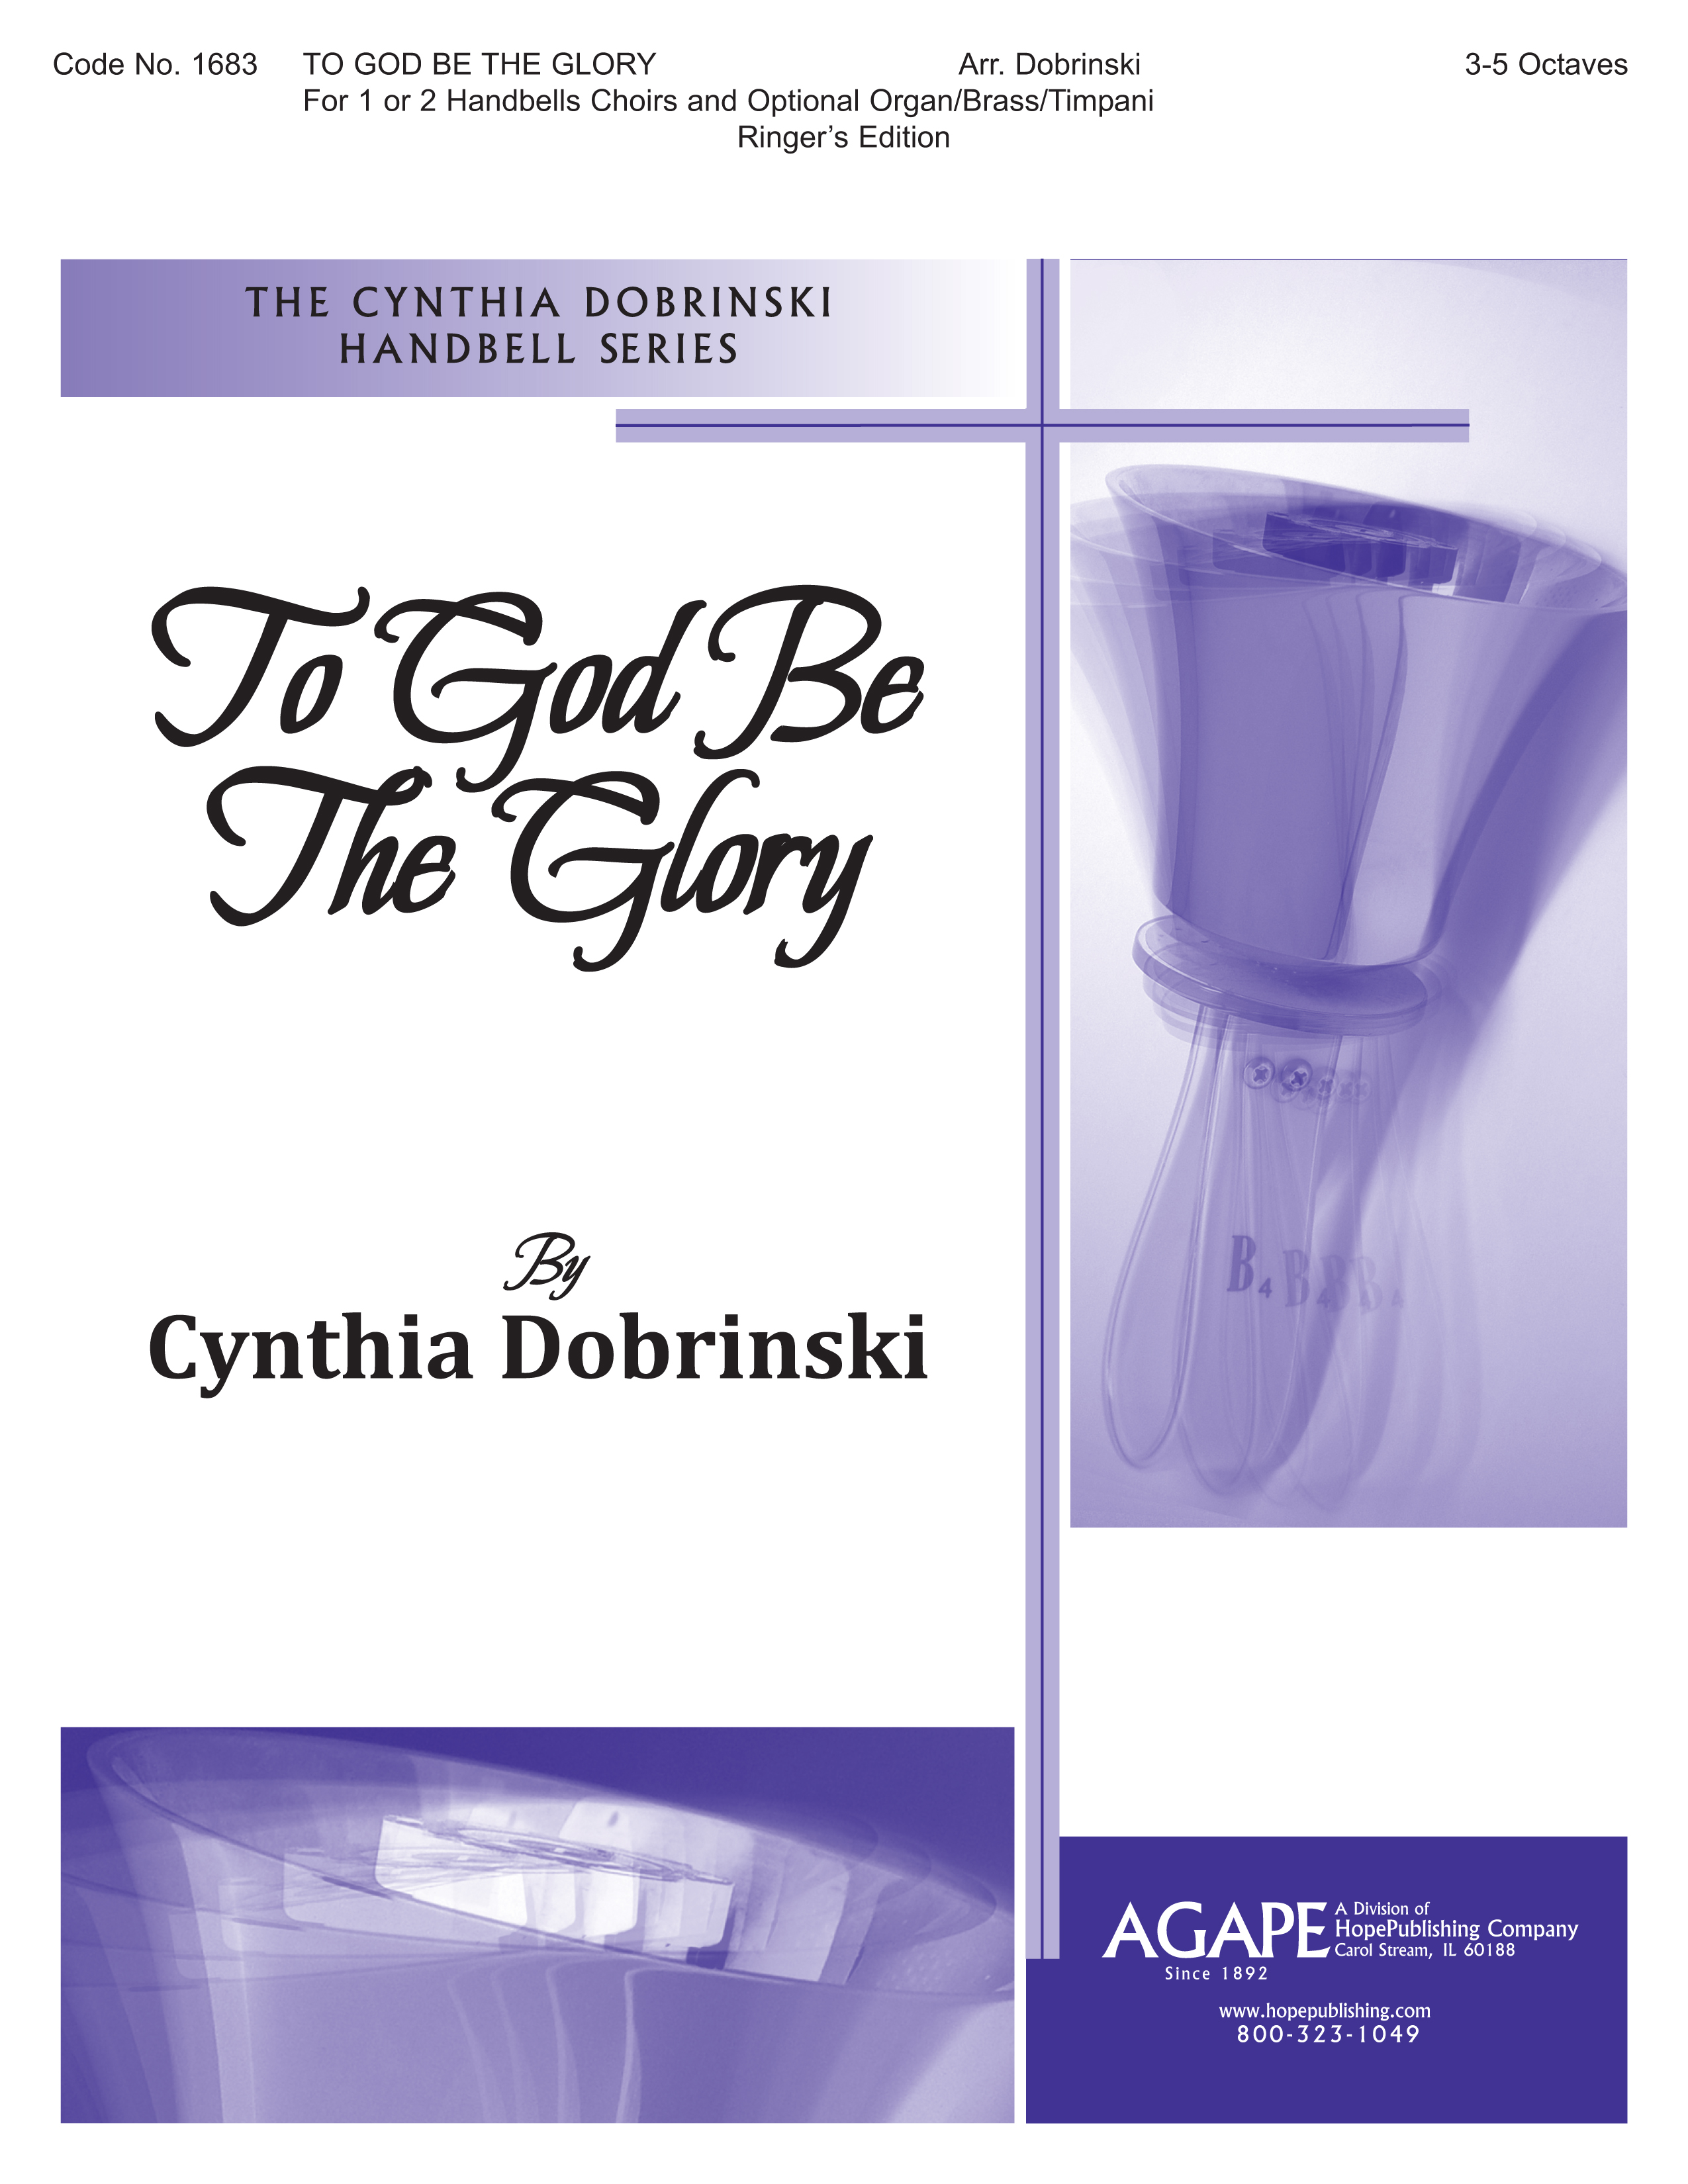 To God Be the Glory - Ringers Edition Cover Image